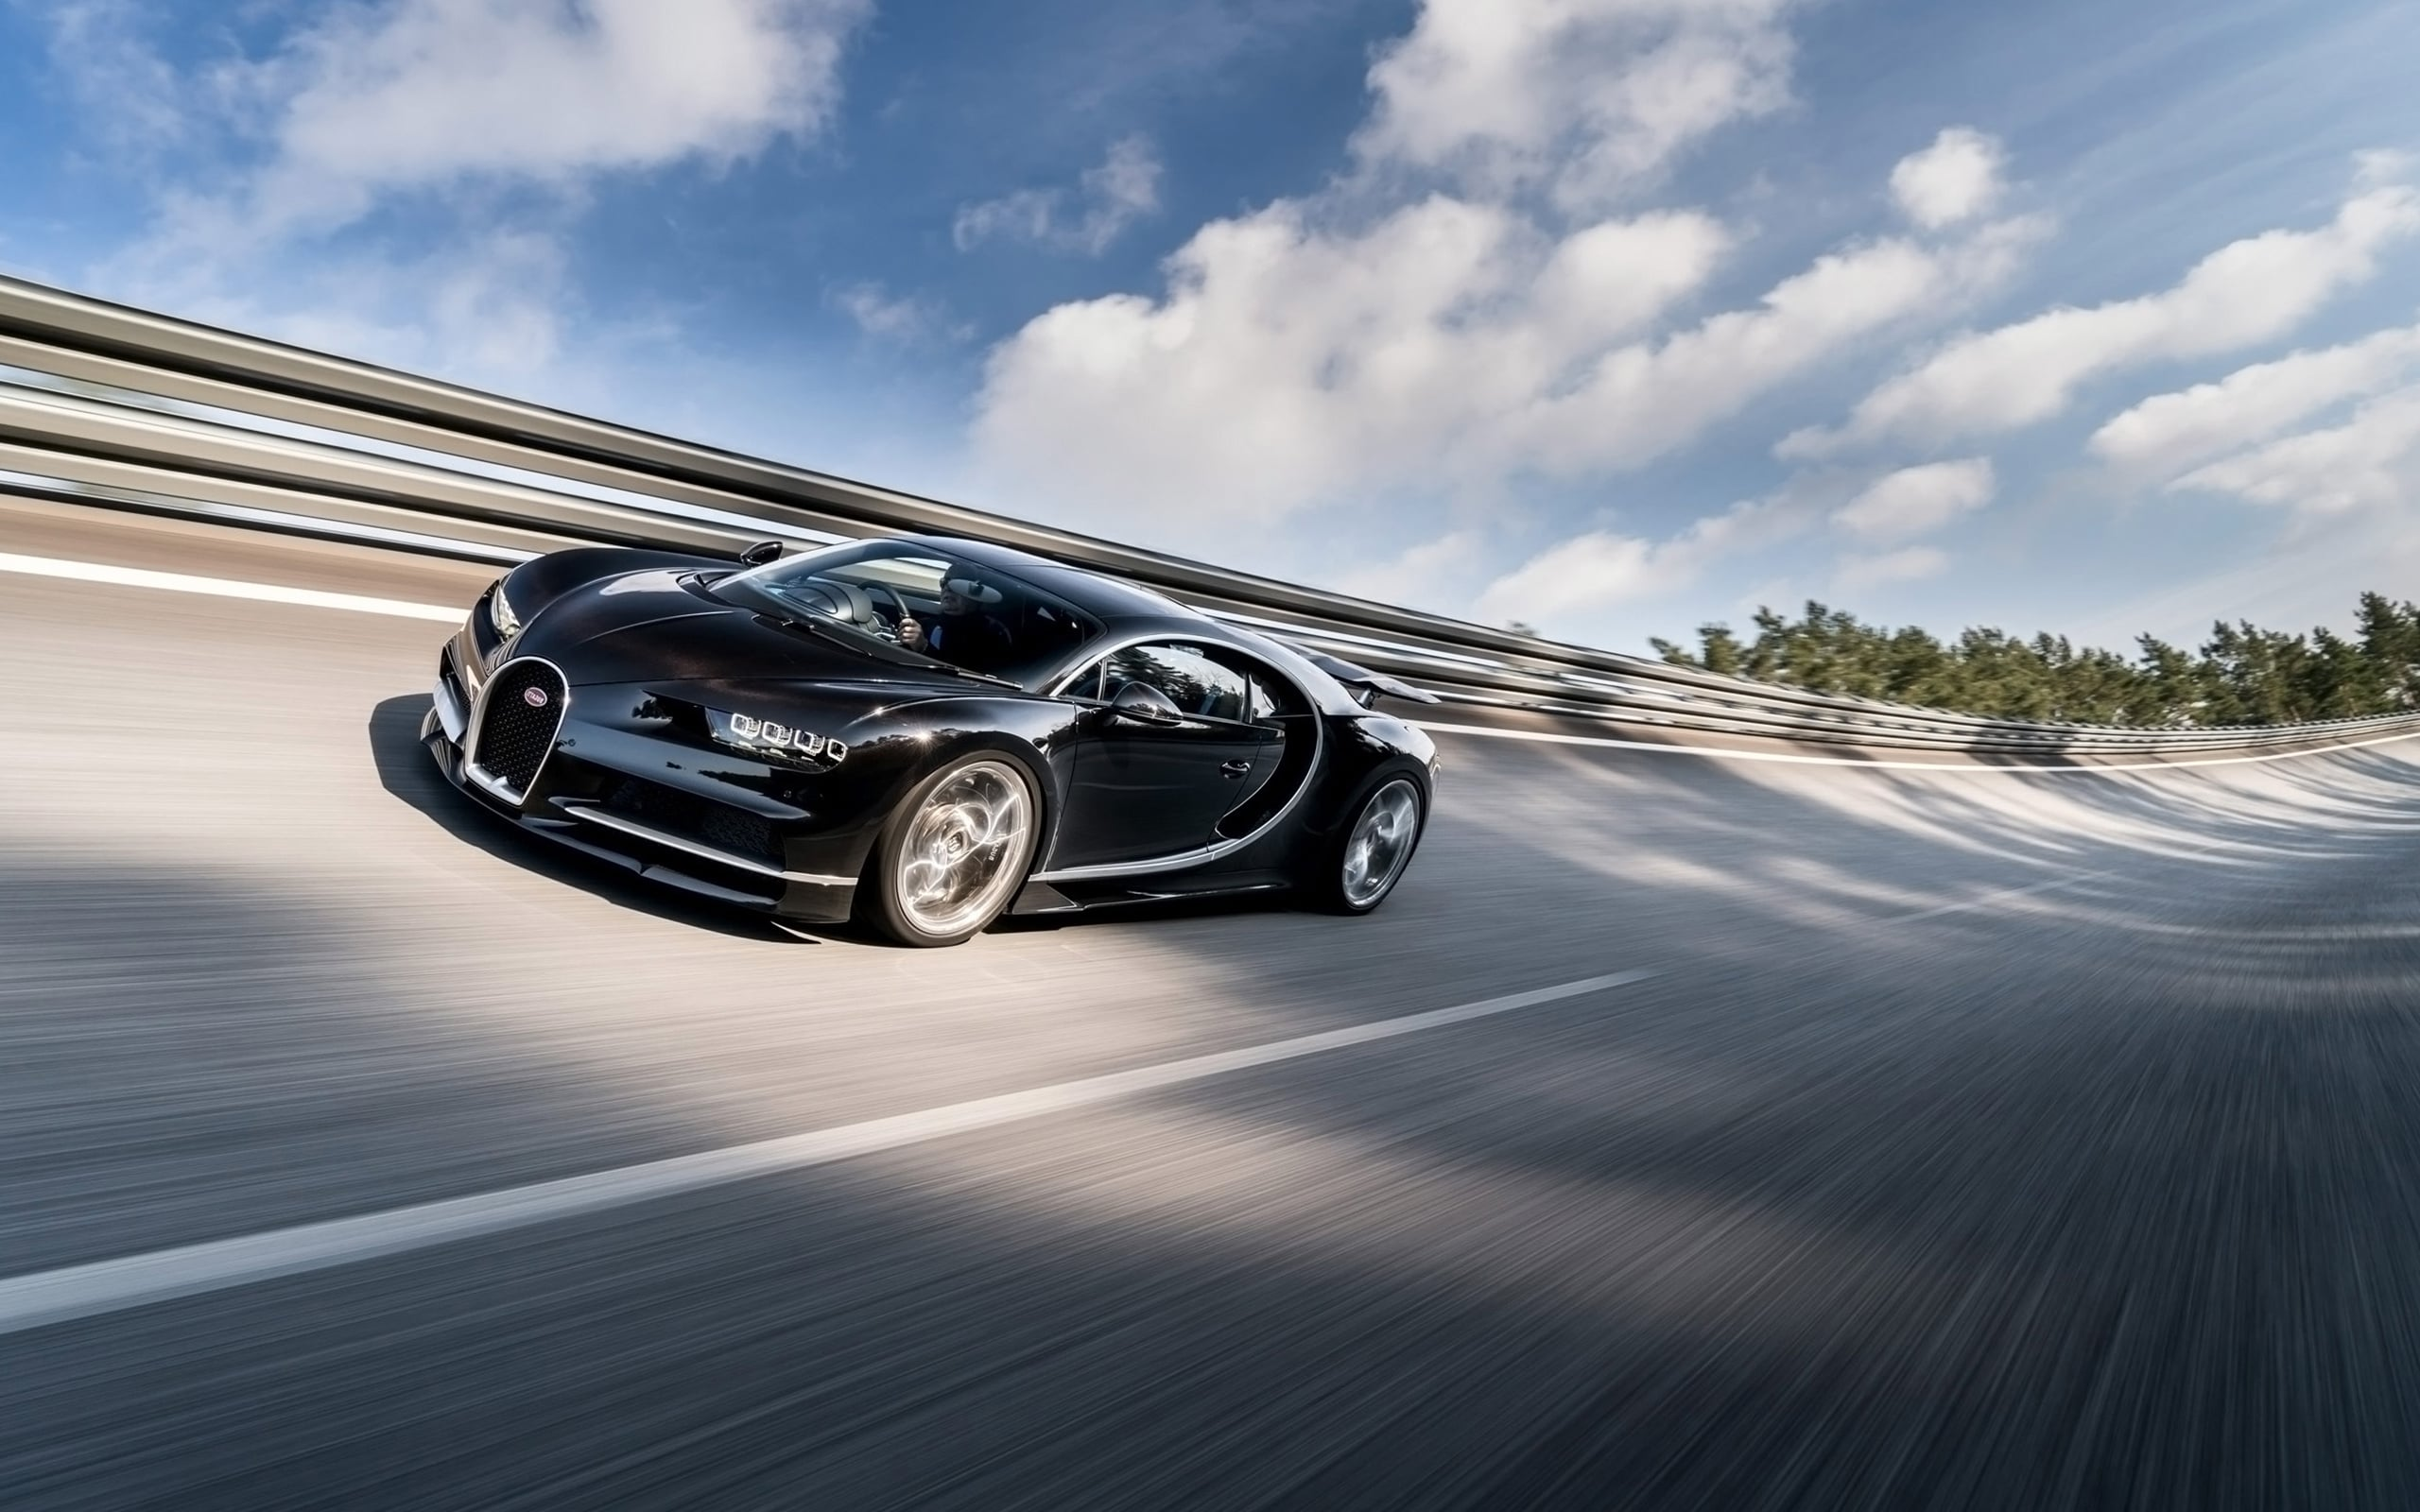 bugatti chiron world record with Bugatti Chiron Wont Hit 285mph Heres on Bugatti Veyron 16 4 Grand Sport Vitesse Sets World Speed Record 2013 Widescreen Wallpaper Ds11 I5545 also Picture548733 besides Bugatti Veyron Price In India furthermore 114981 furthermore Bugatti Chiron In Action As Worlds Fastest Most Powerful Car.